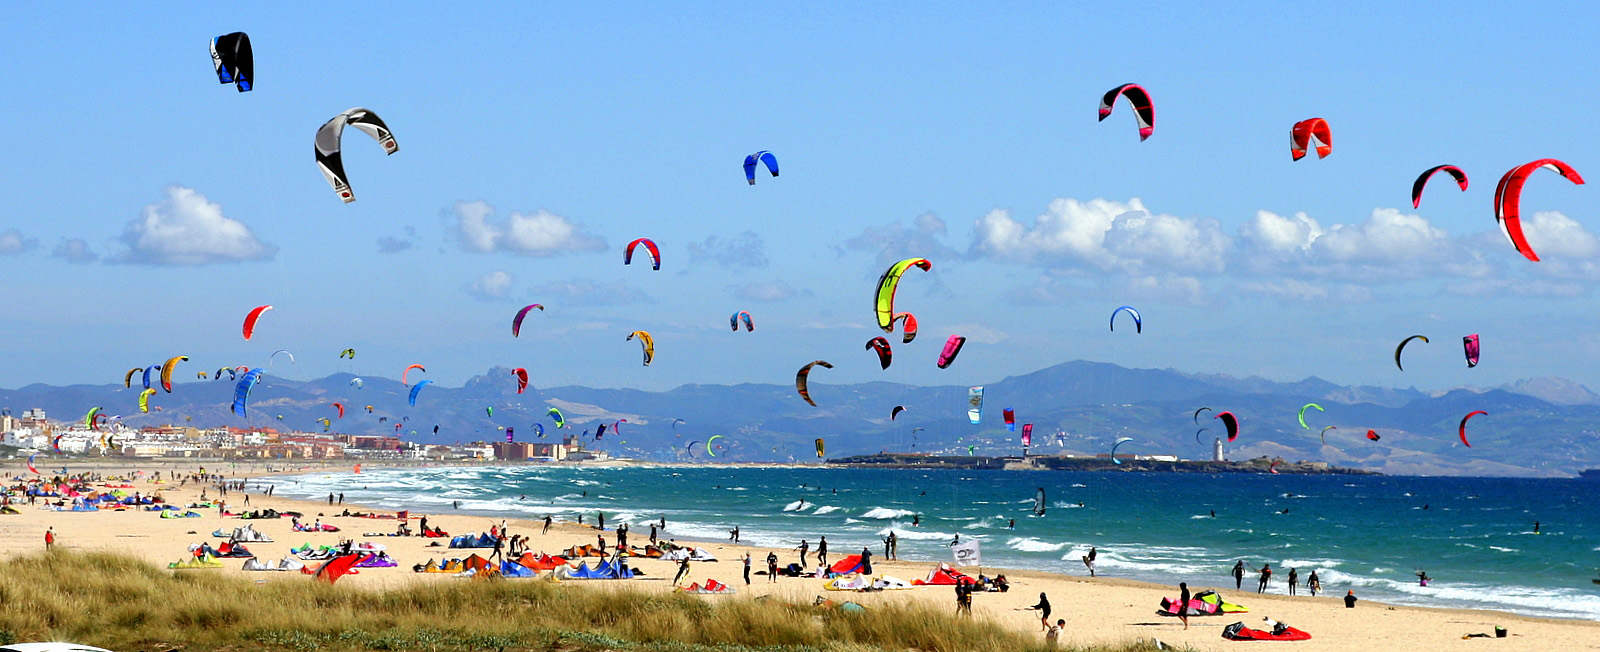 Playa de Los Lances, Tarifa